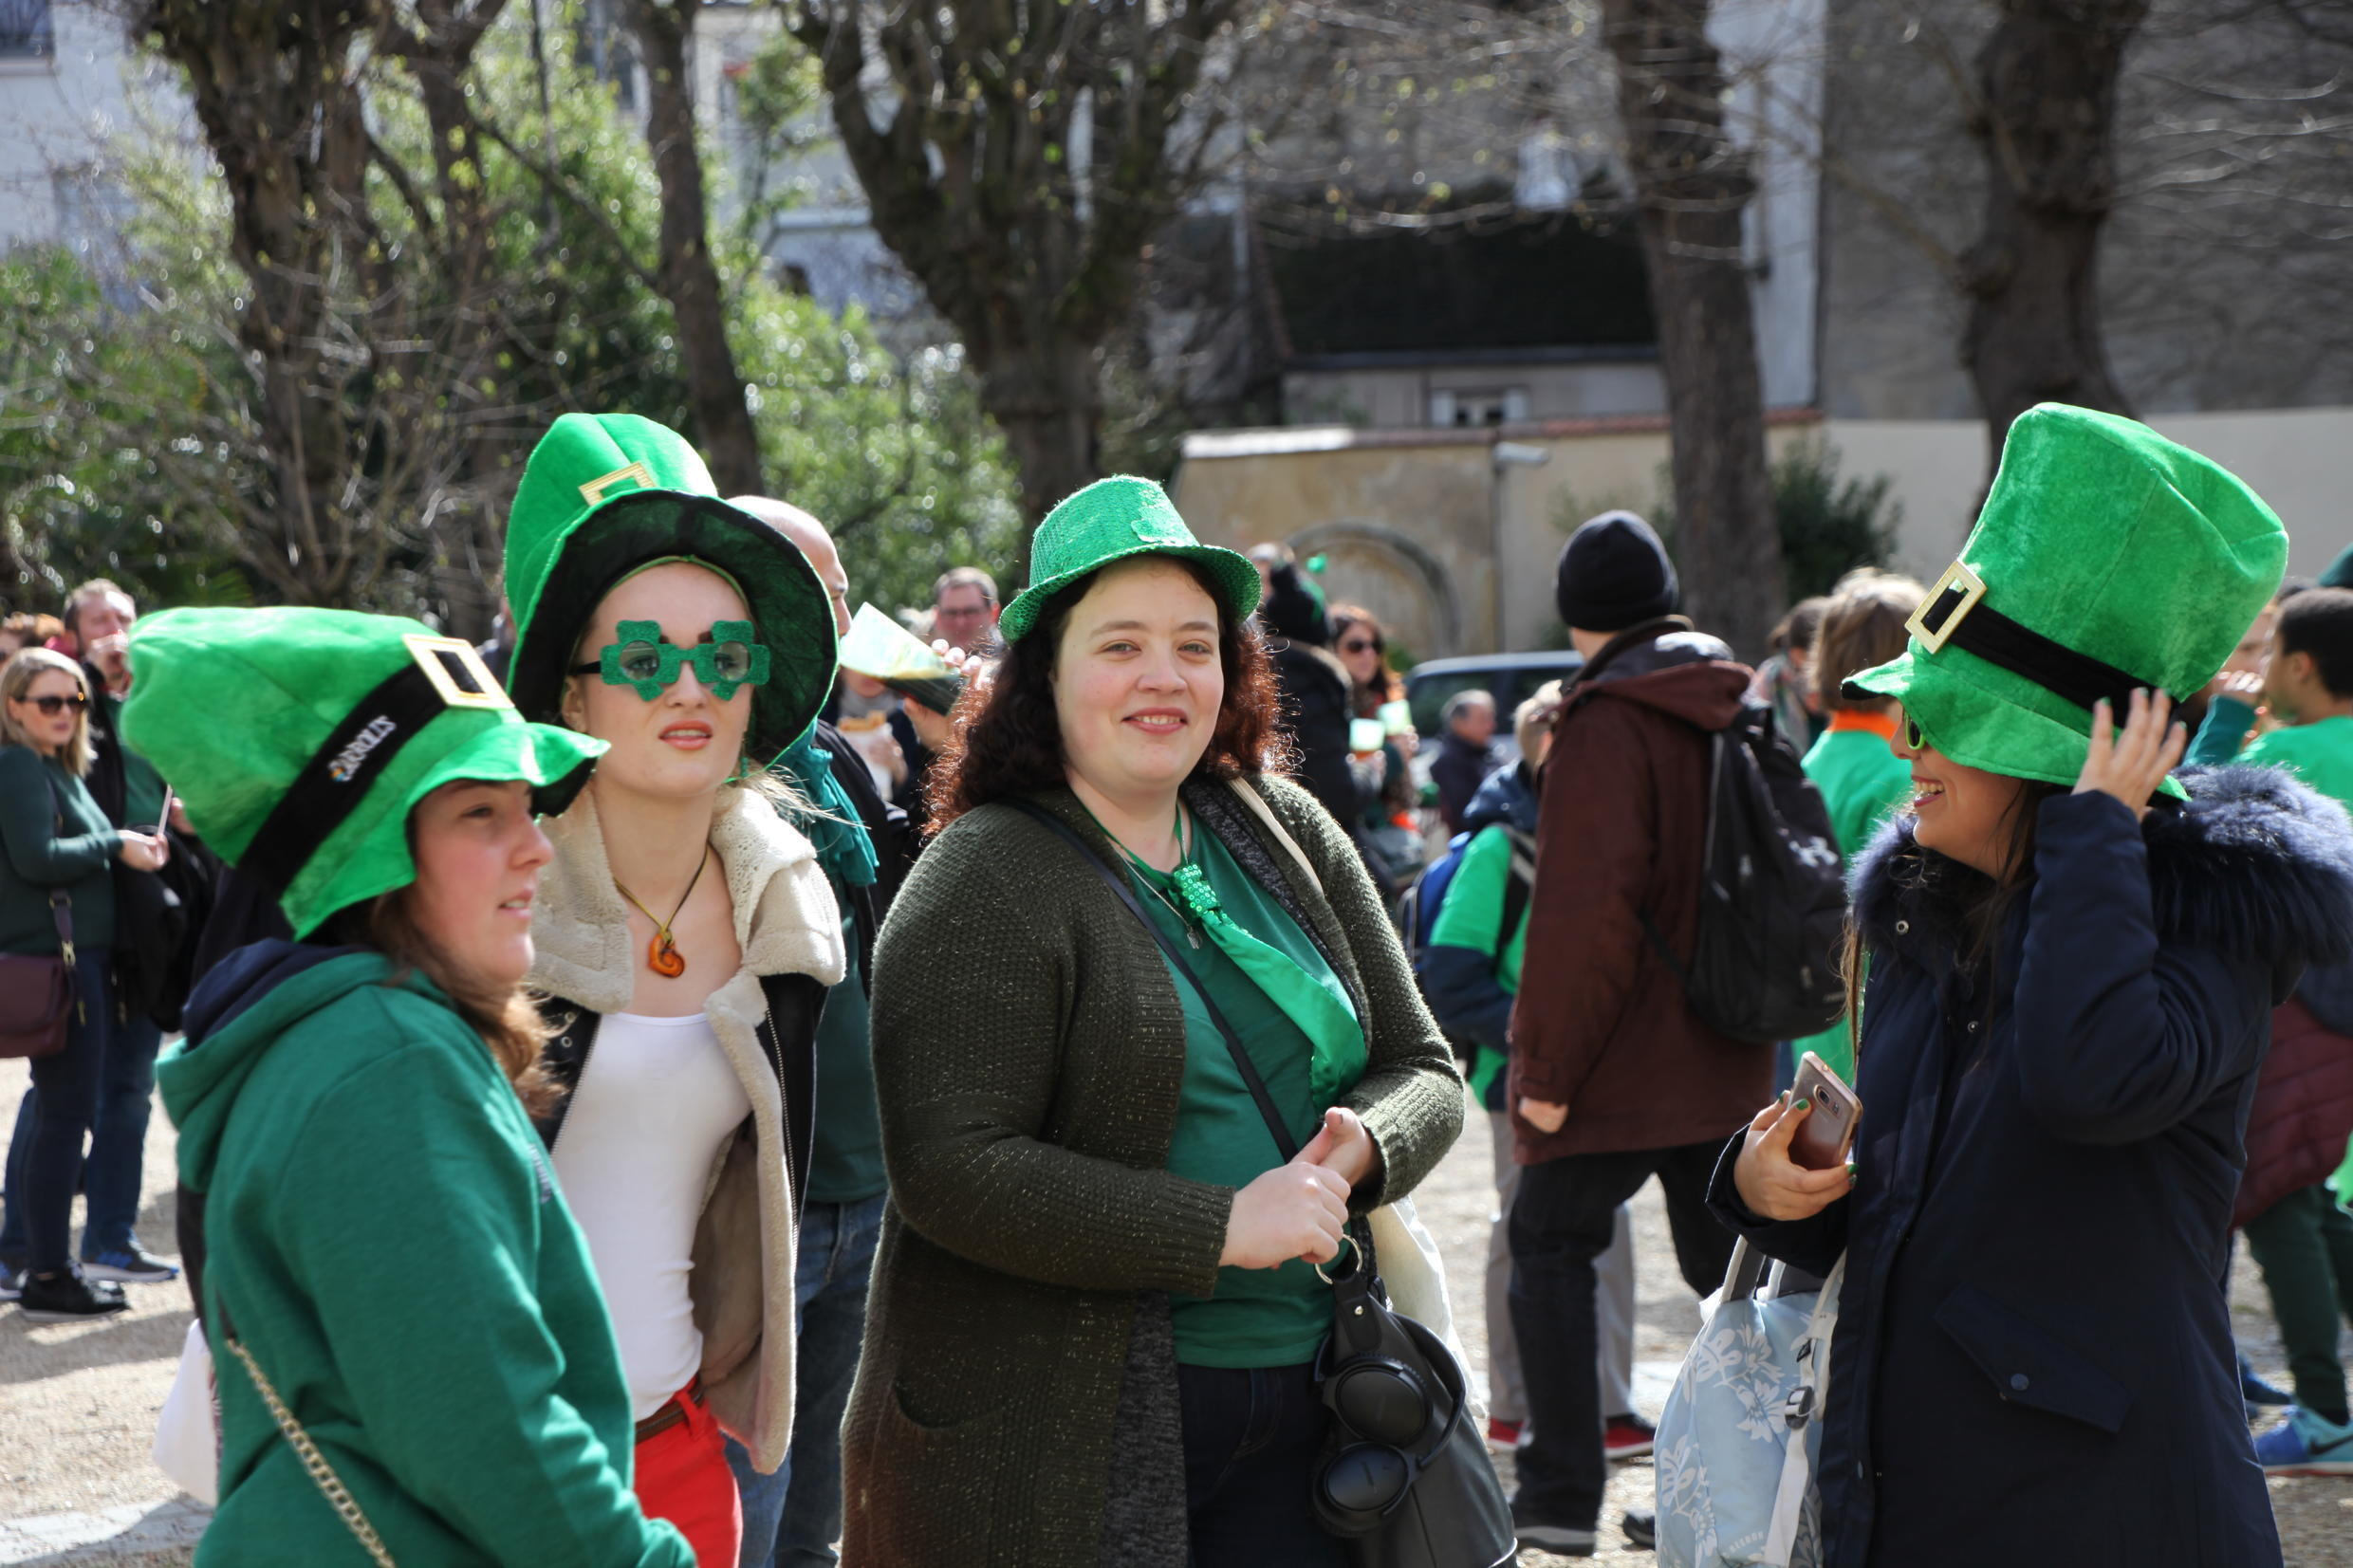 Dressed in green and wearing national symbols, people gather in the courtyard of the Irish Cultural Centre